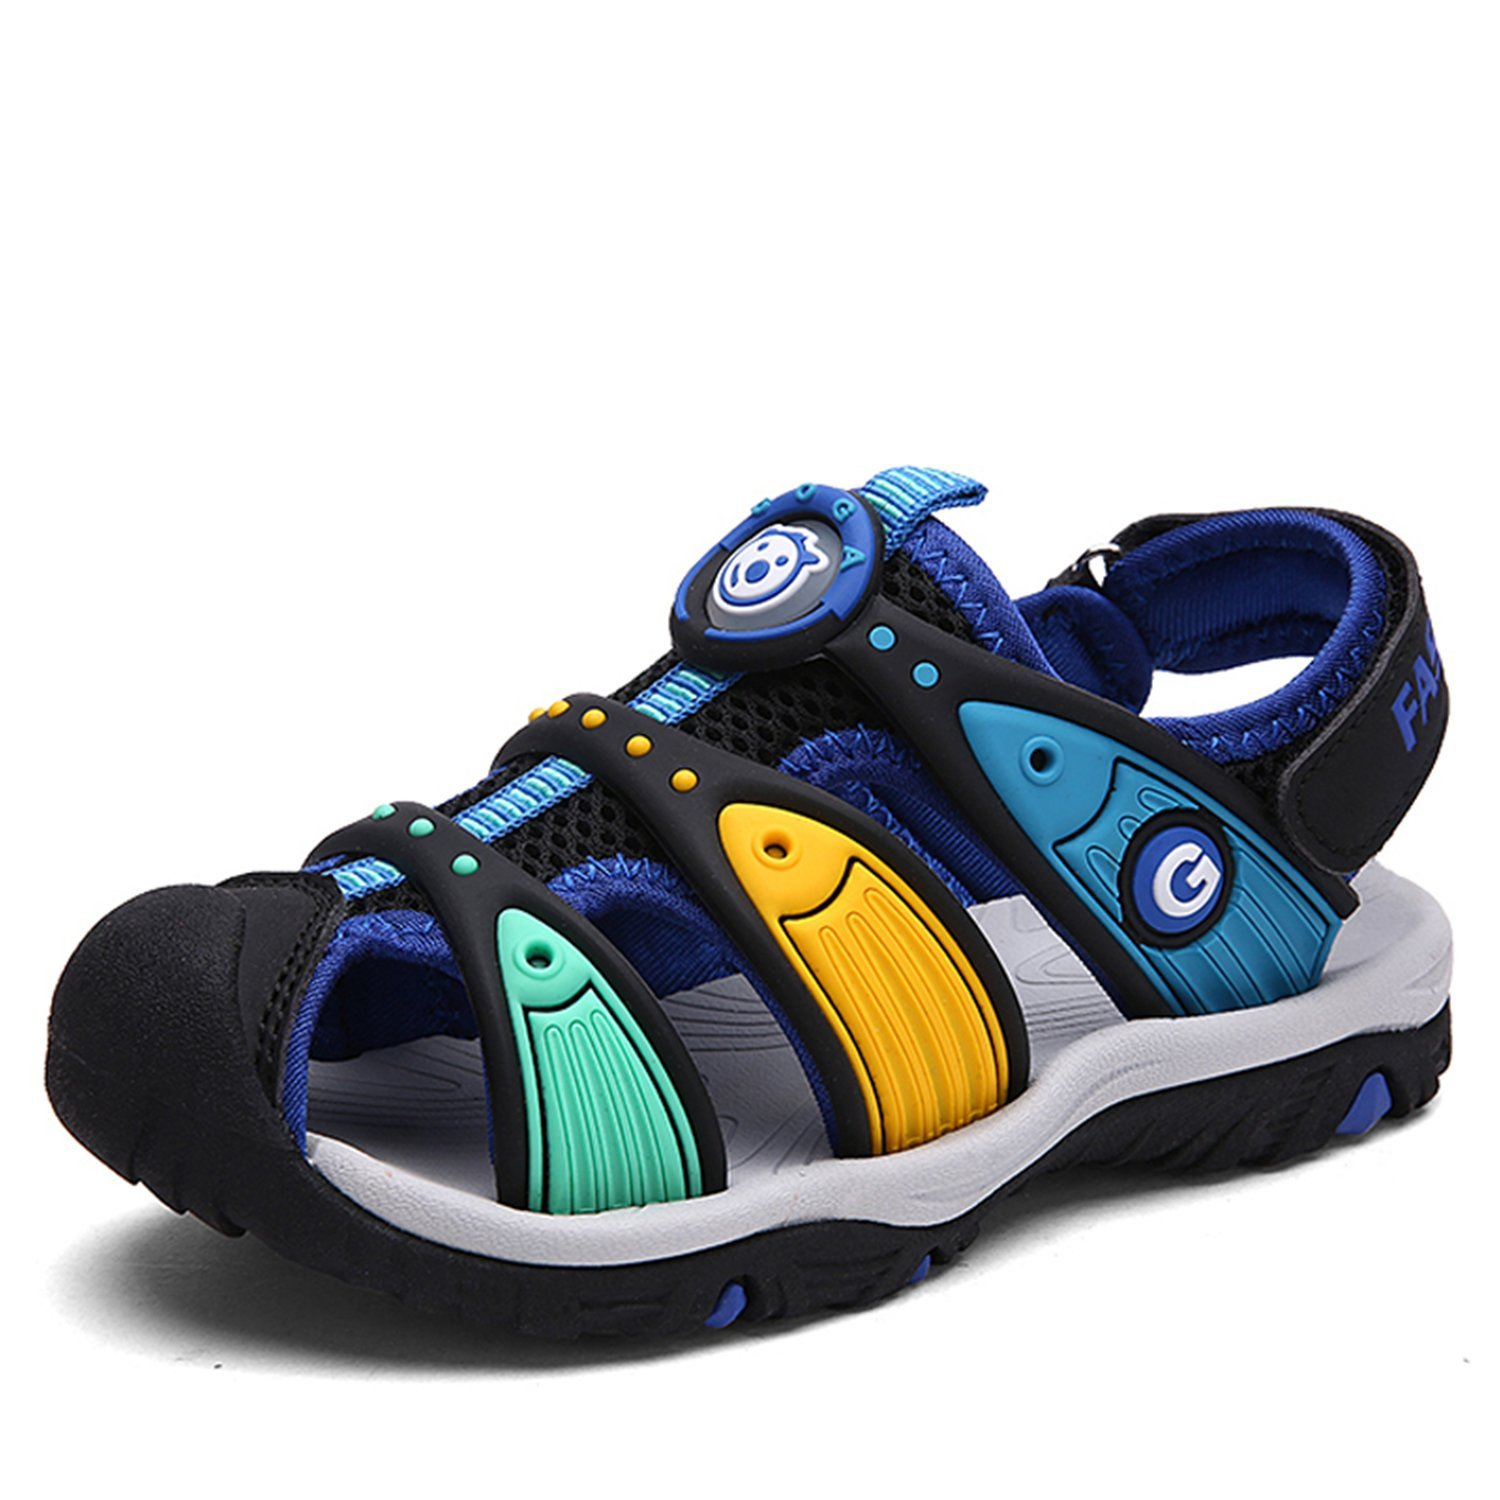 a01c84d0d97dbf Get Quotations · Bigcount Boys Girls Outdoor Sport Closed-Toe Sandals Kids  Breathable Mesh Water Athletic Sandals Shoes